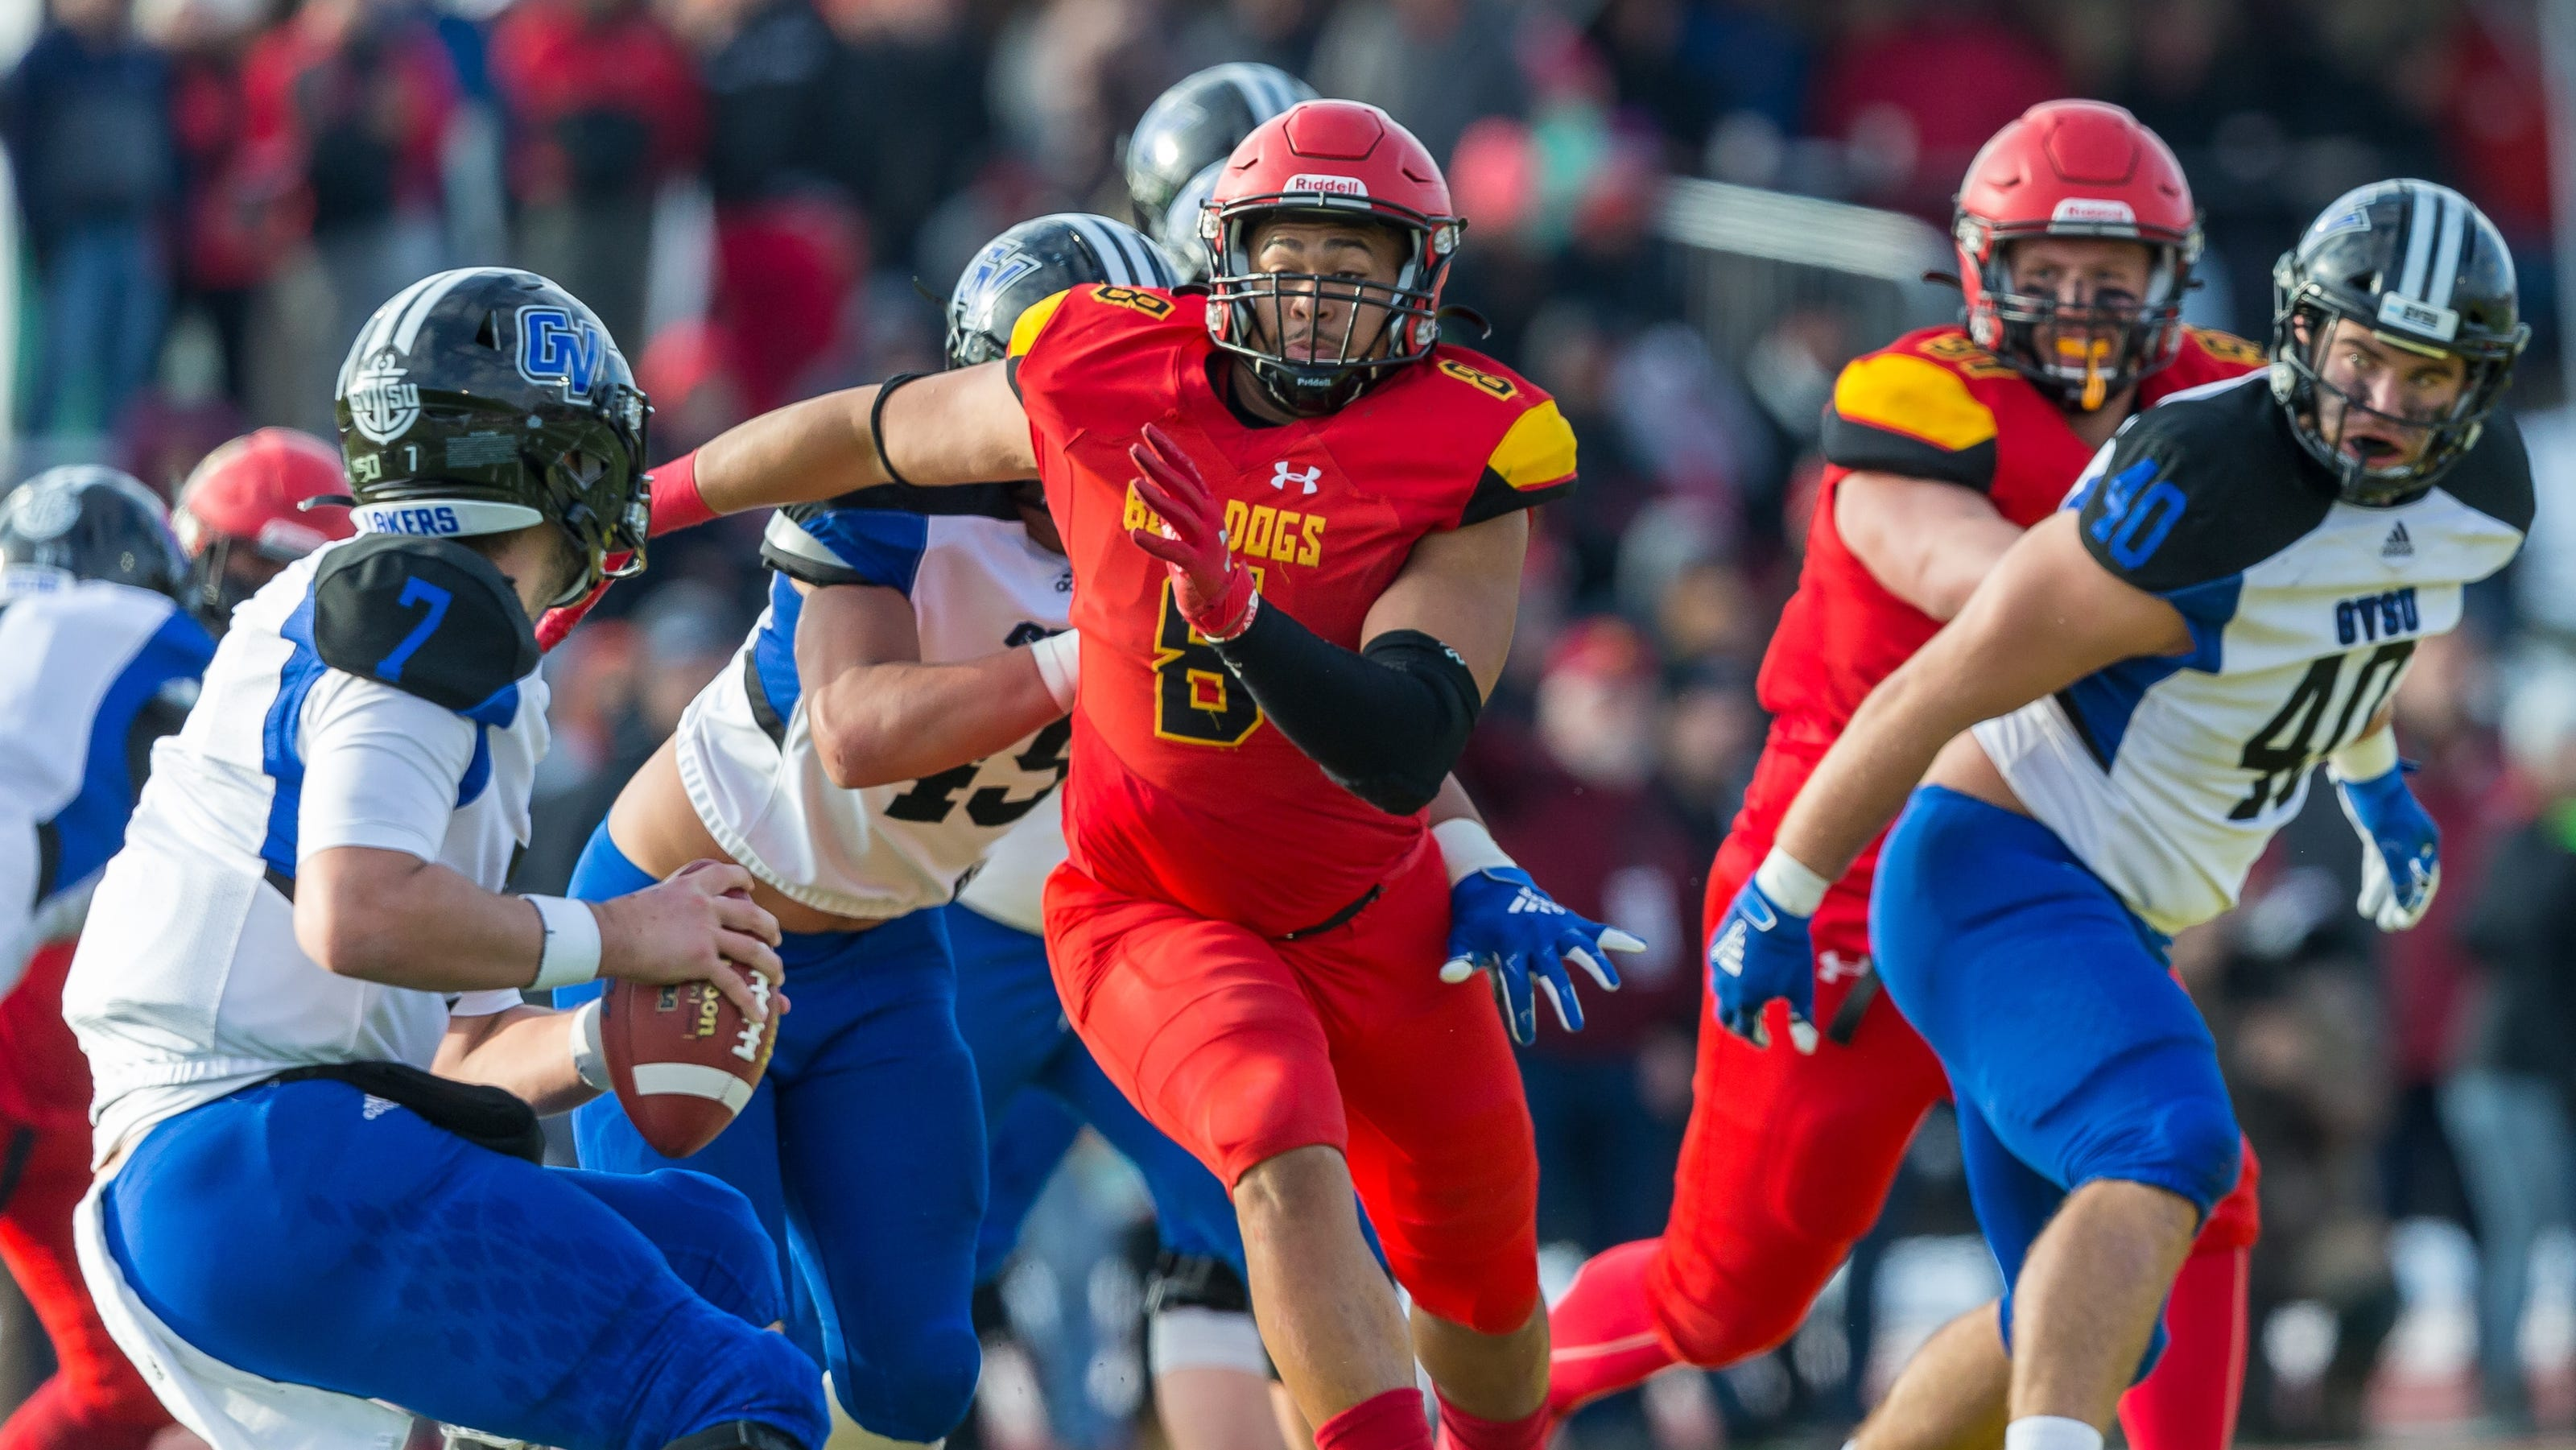 Former Waynesboro Resident Ferris State Grad Signs With Atlanta Falcons